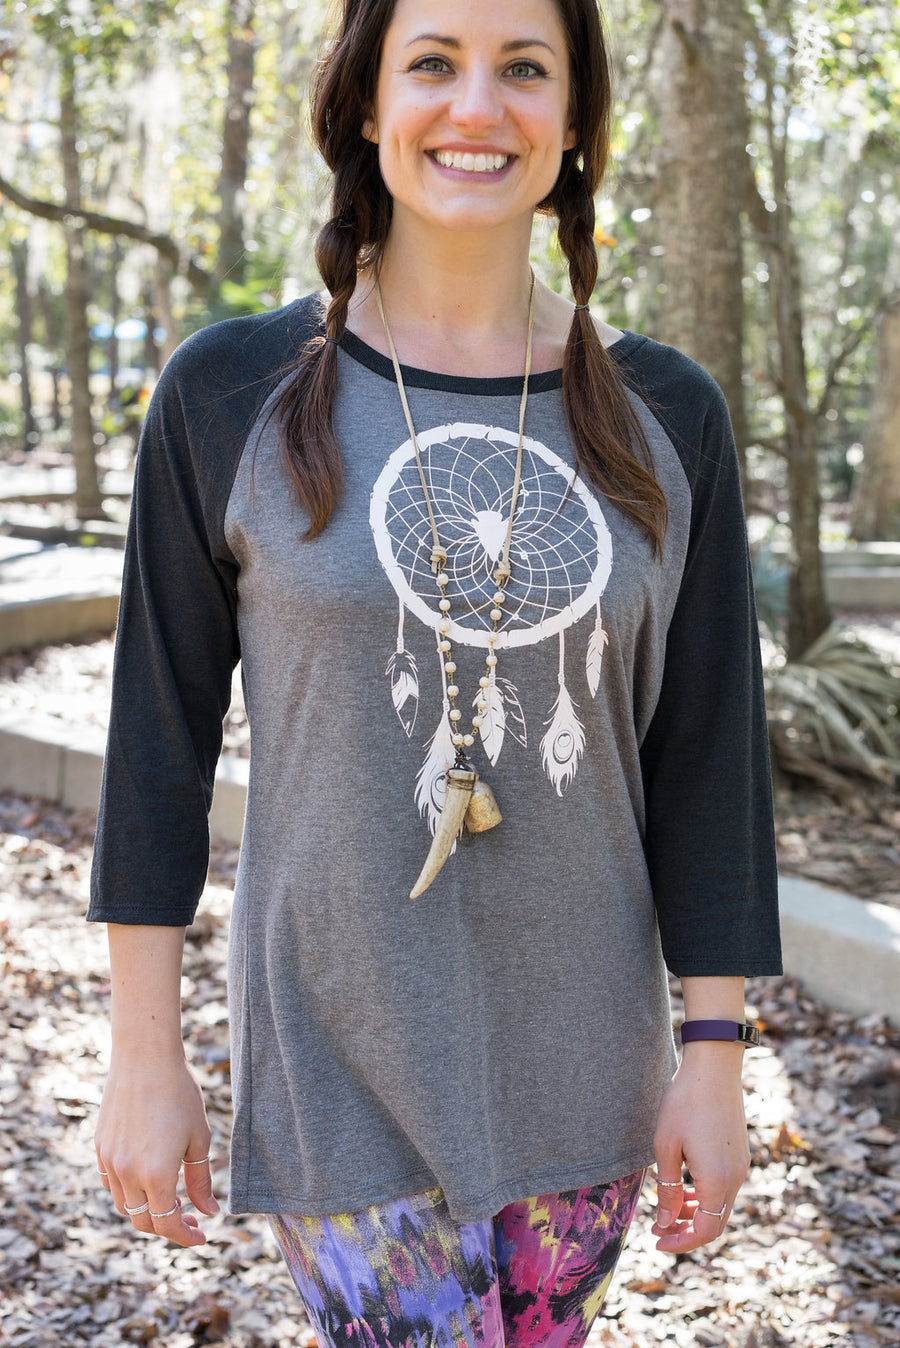 Dreamcatcher Women's Baseball Tee - Inspired by Stephanie Rose